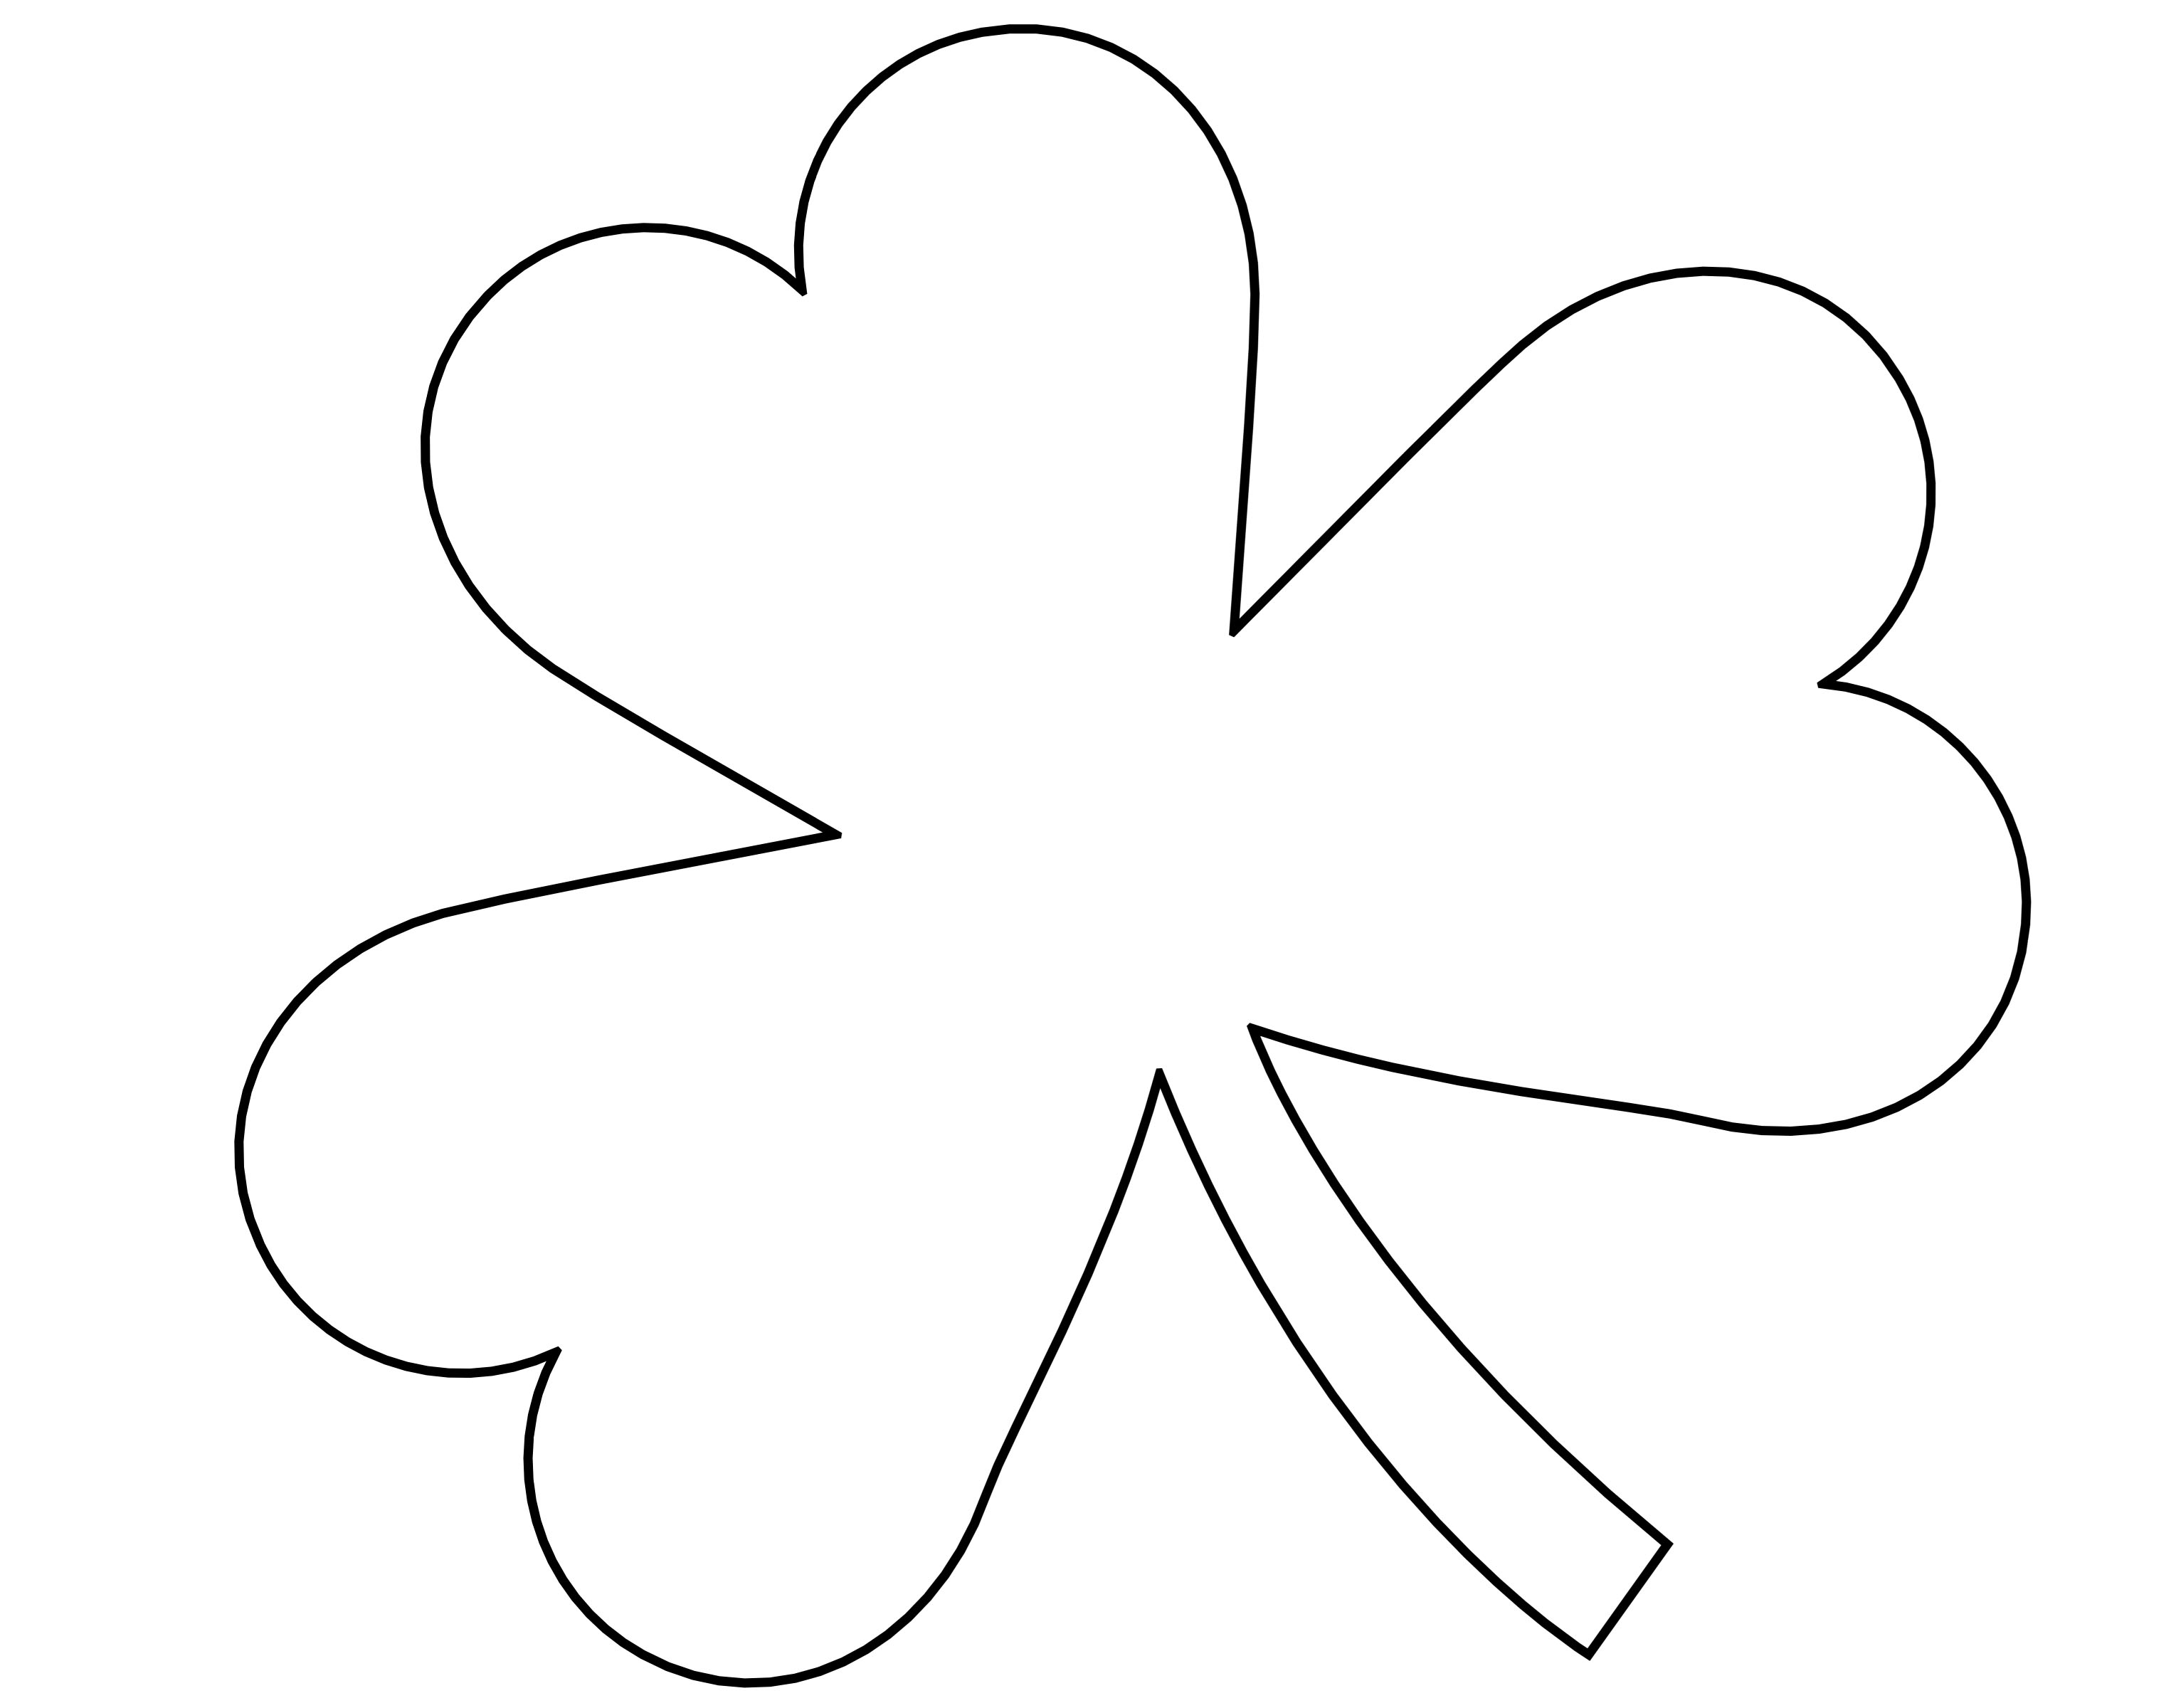 Simplicity image with regard to printable shamrocks templates